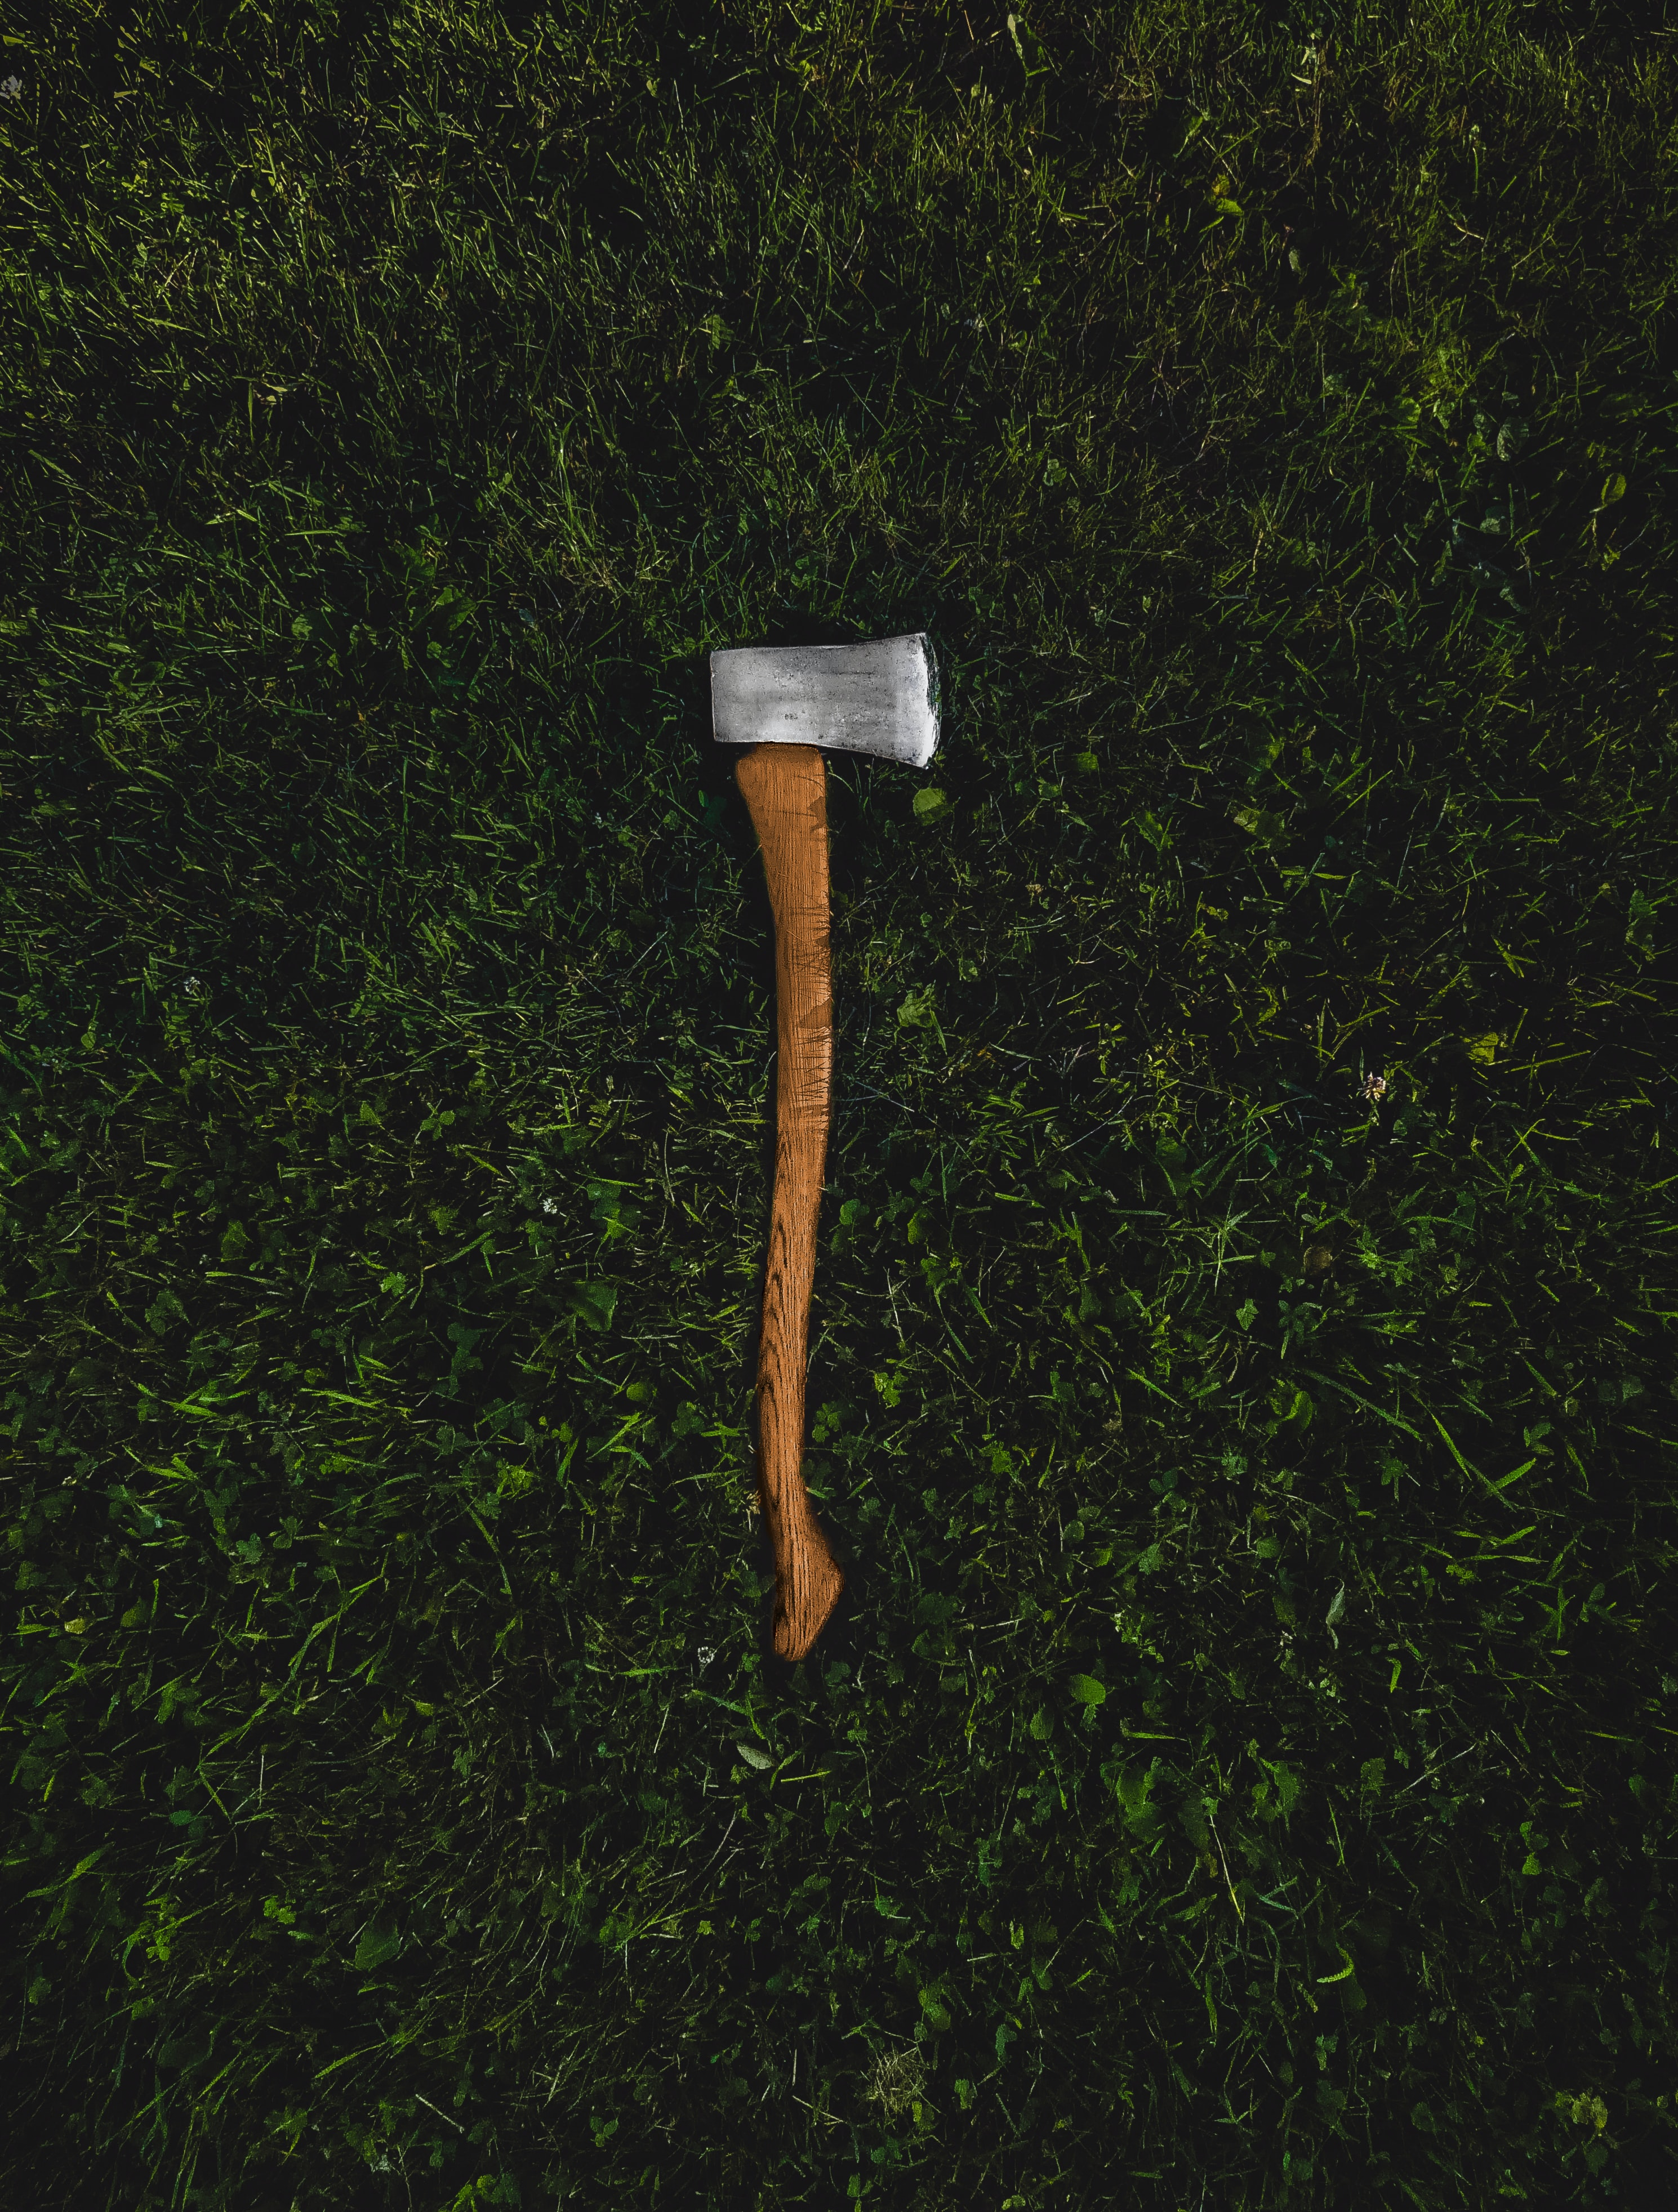 brown and silver pickaxe